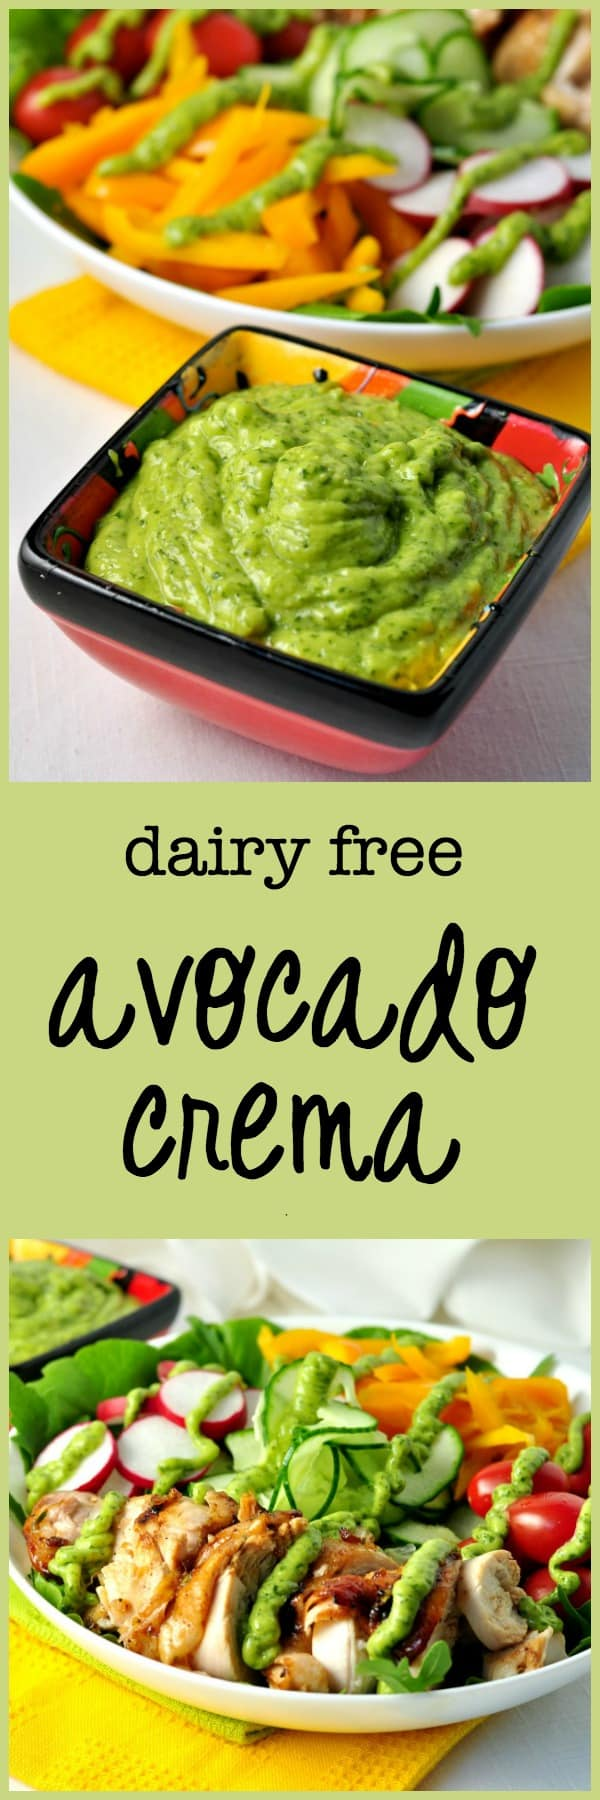 Drizzle this avocado cream on top of a simple salad, on fish tacos, on a burrito bowl or use it as a sandwich or burger spread.  It's quick and easy to whip up and you can store it in your fridge to use throughout the week.